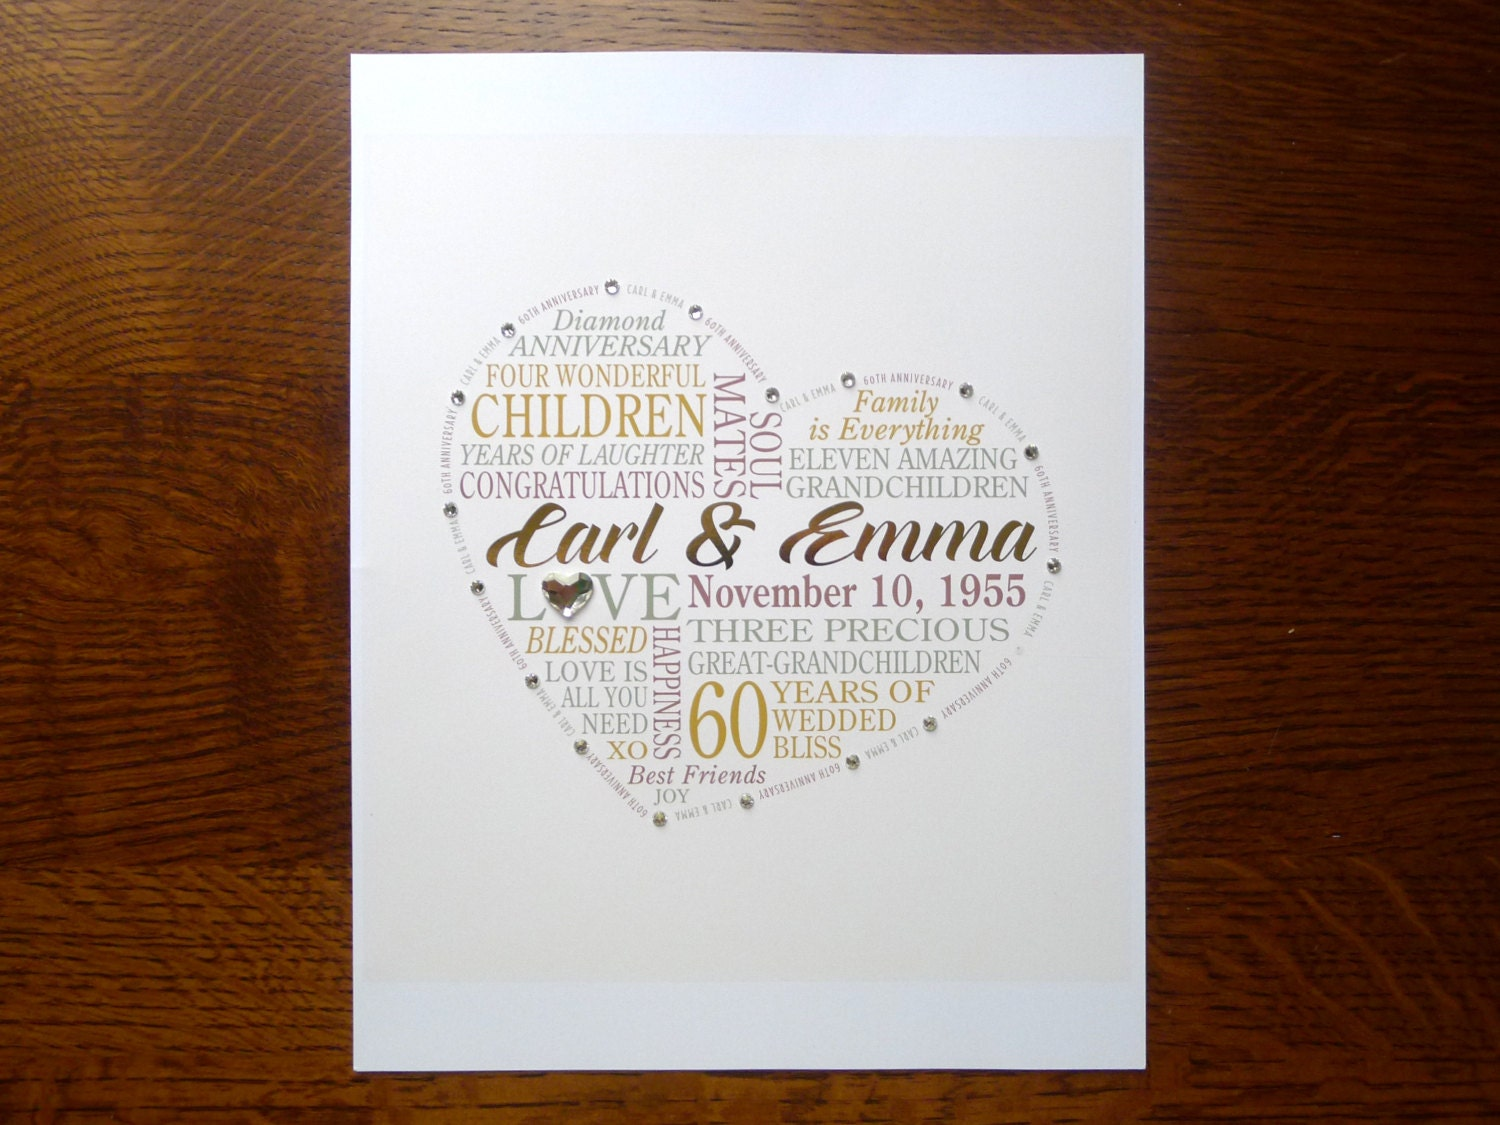 Ideas For 60th Wedding Anniversary Gifts For Parents: Personalized 60th Anniversary Gift For Parents Grandparents